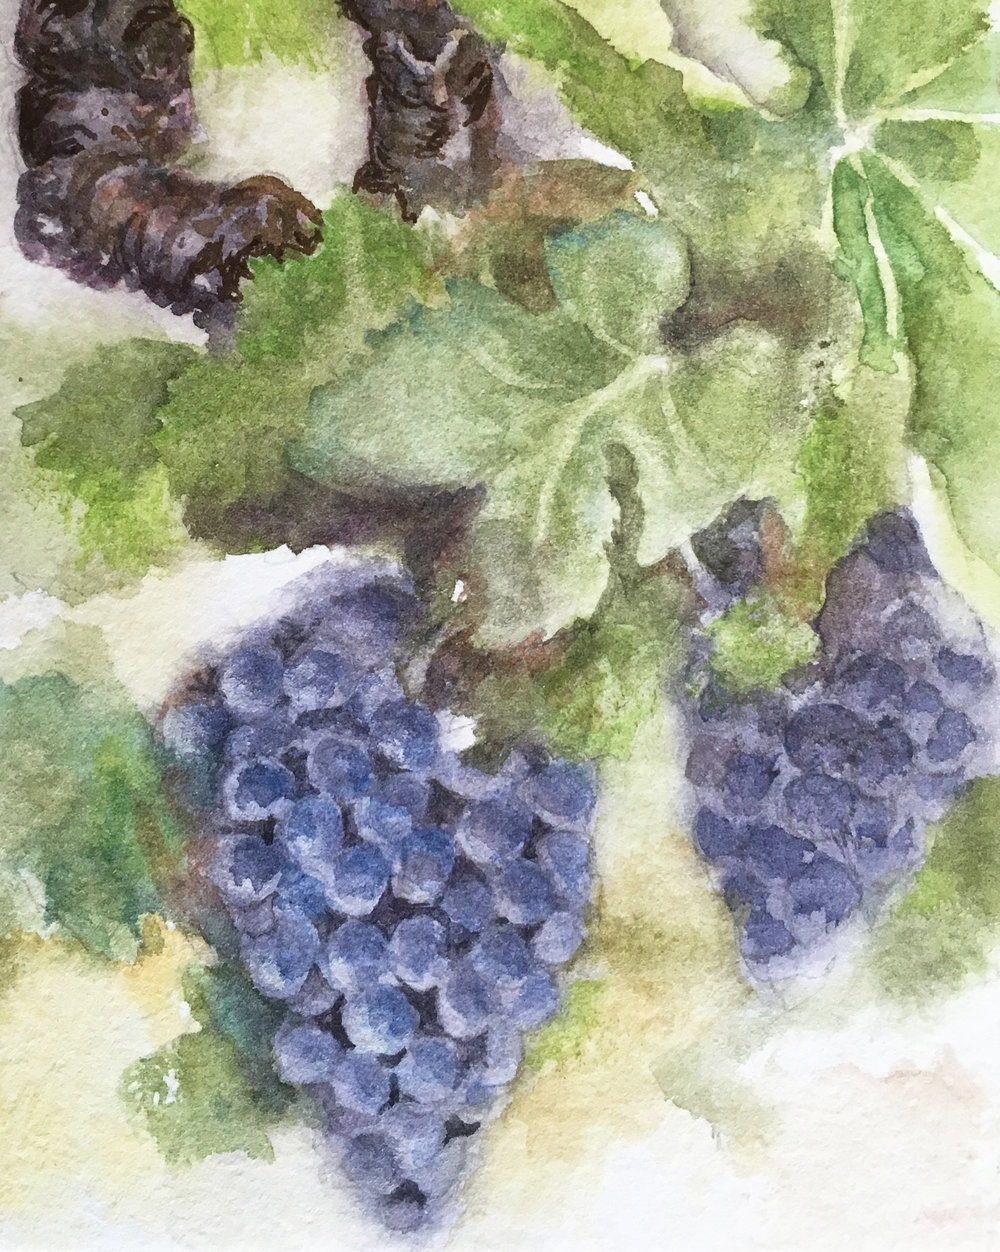 grapes+on+the+vine.jpg